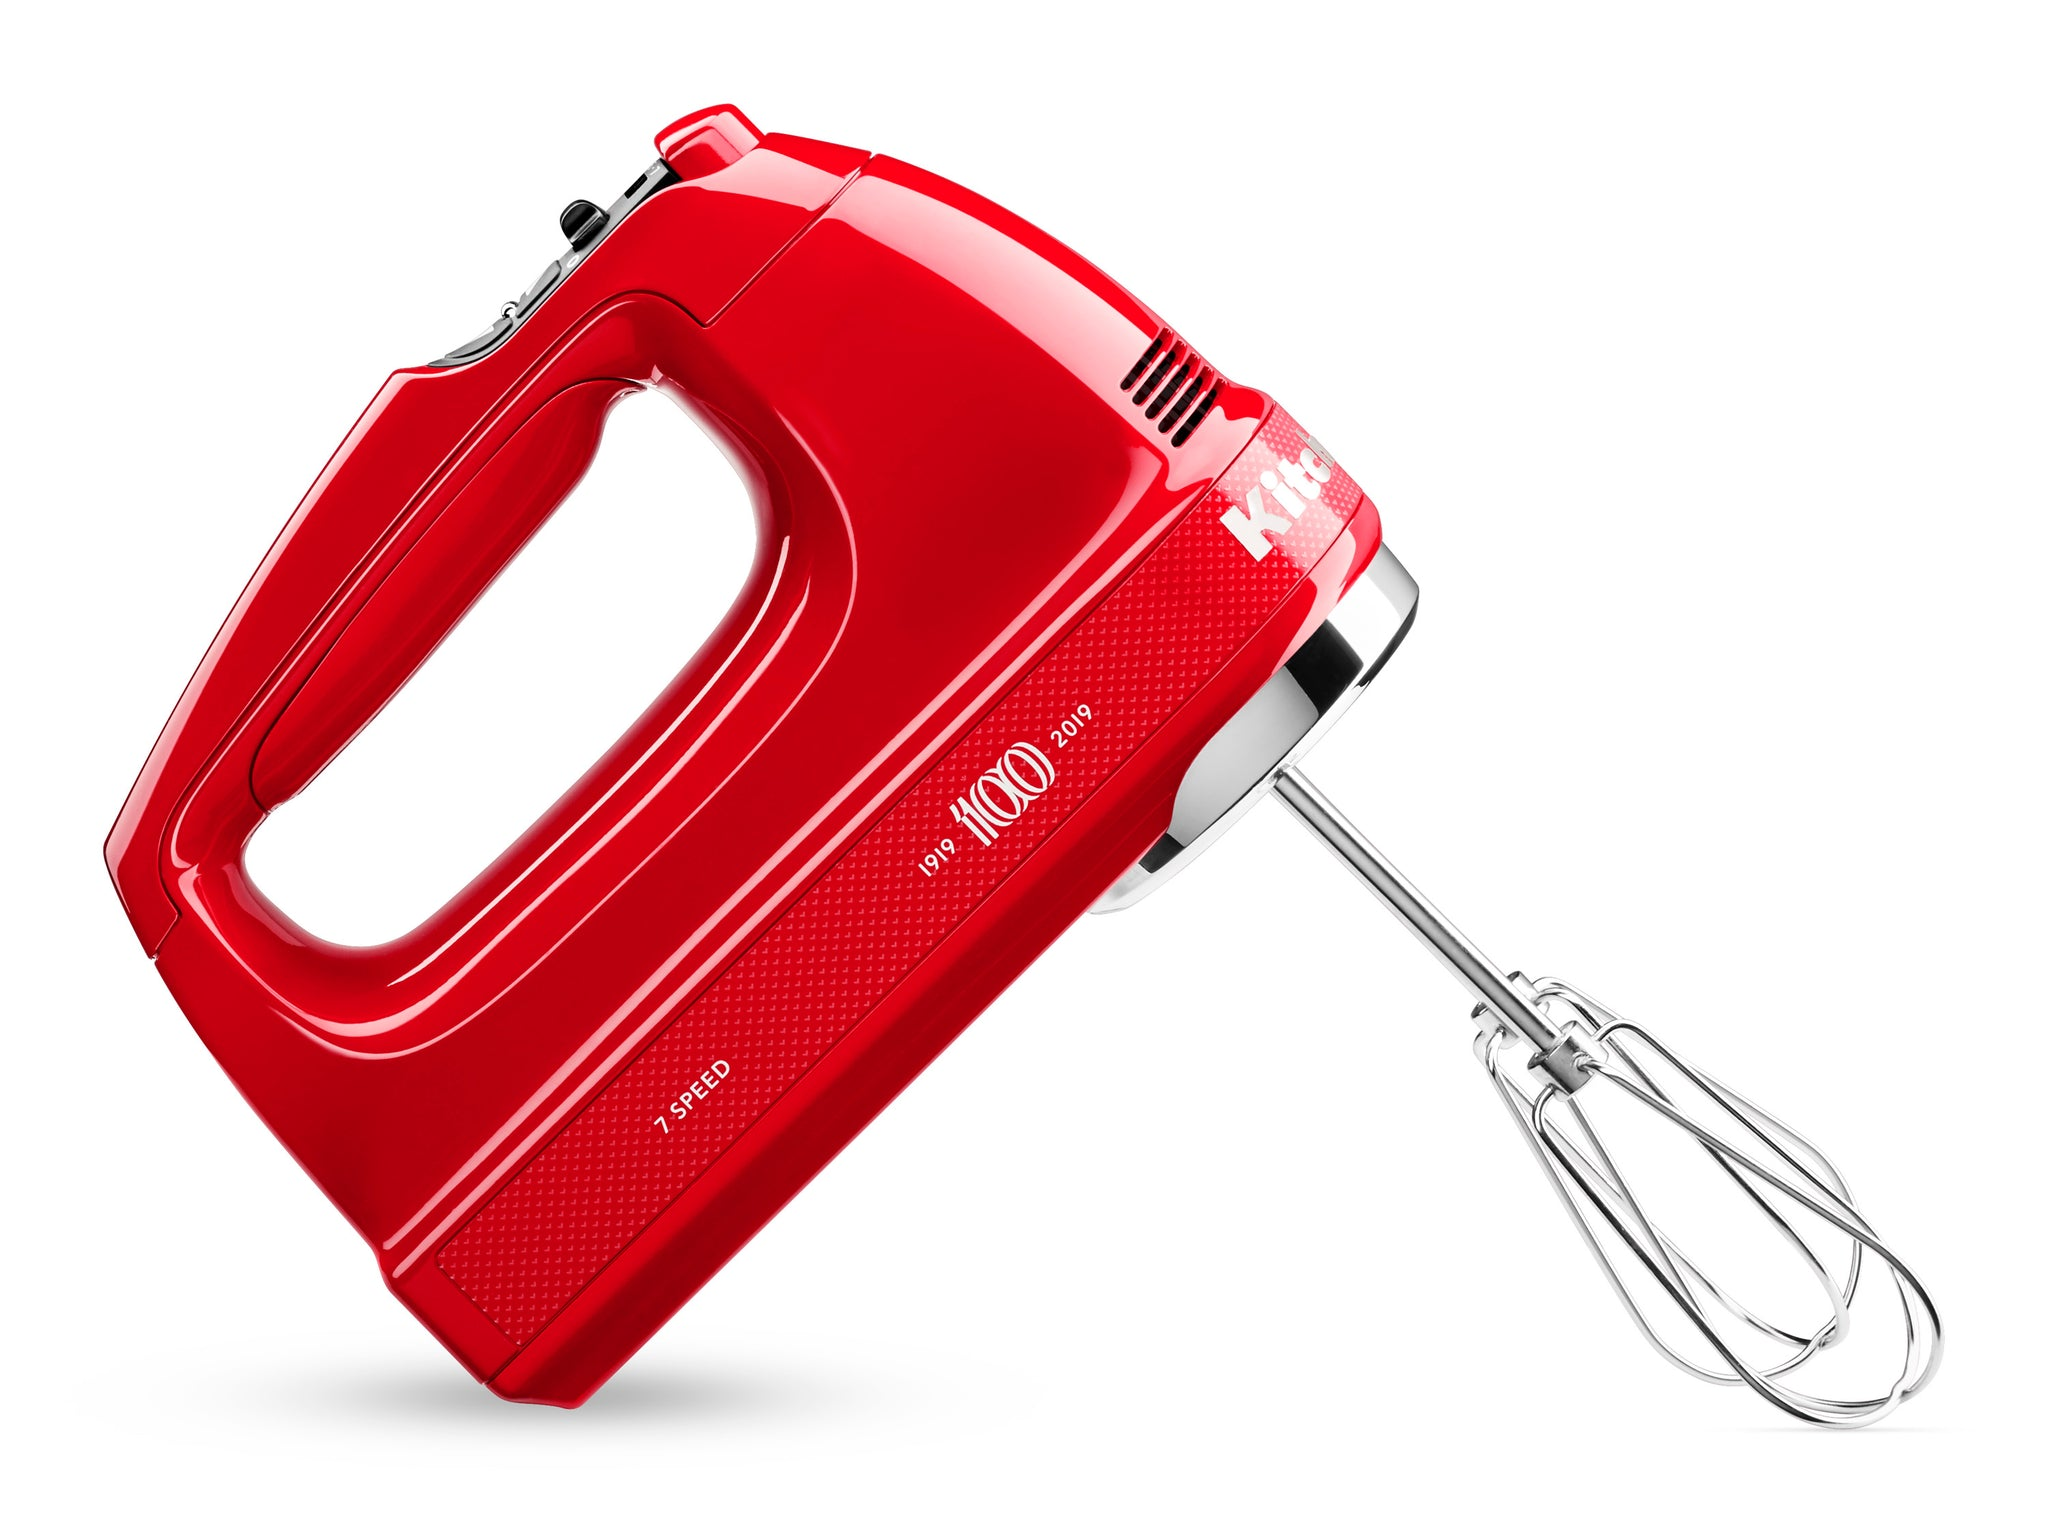 100 Year Limited Edition Queen of Hearts 7-Speed Hand Mixer